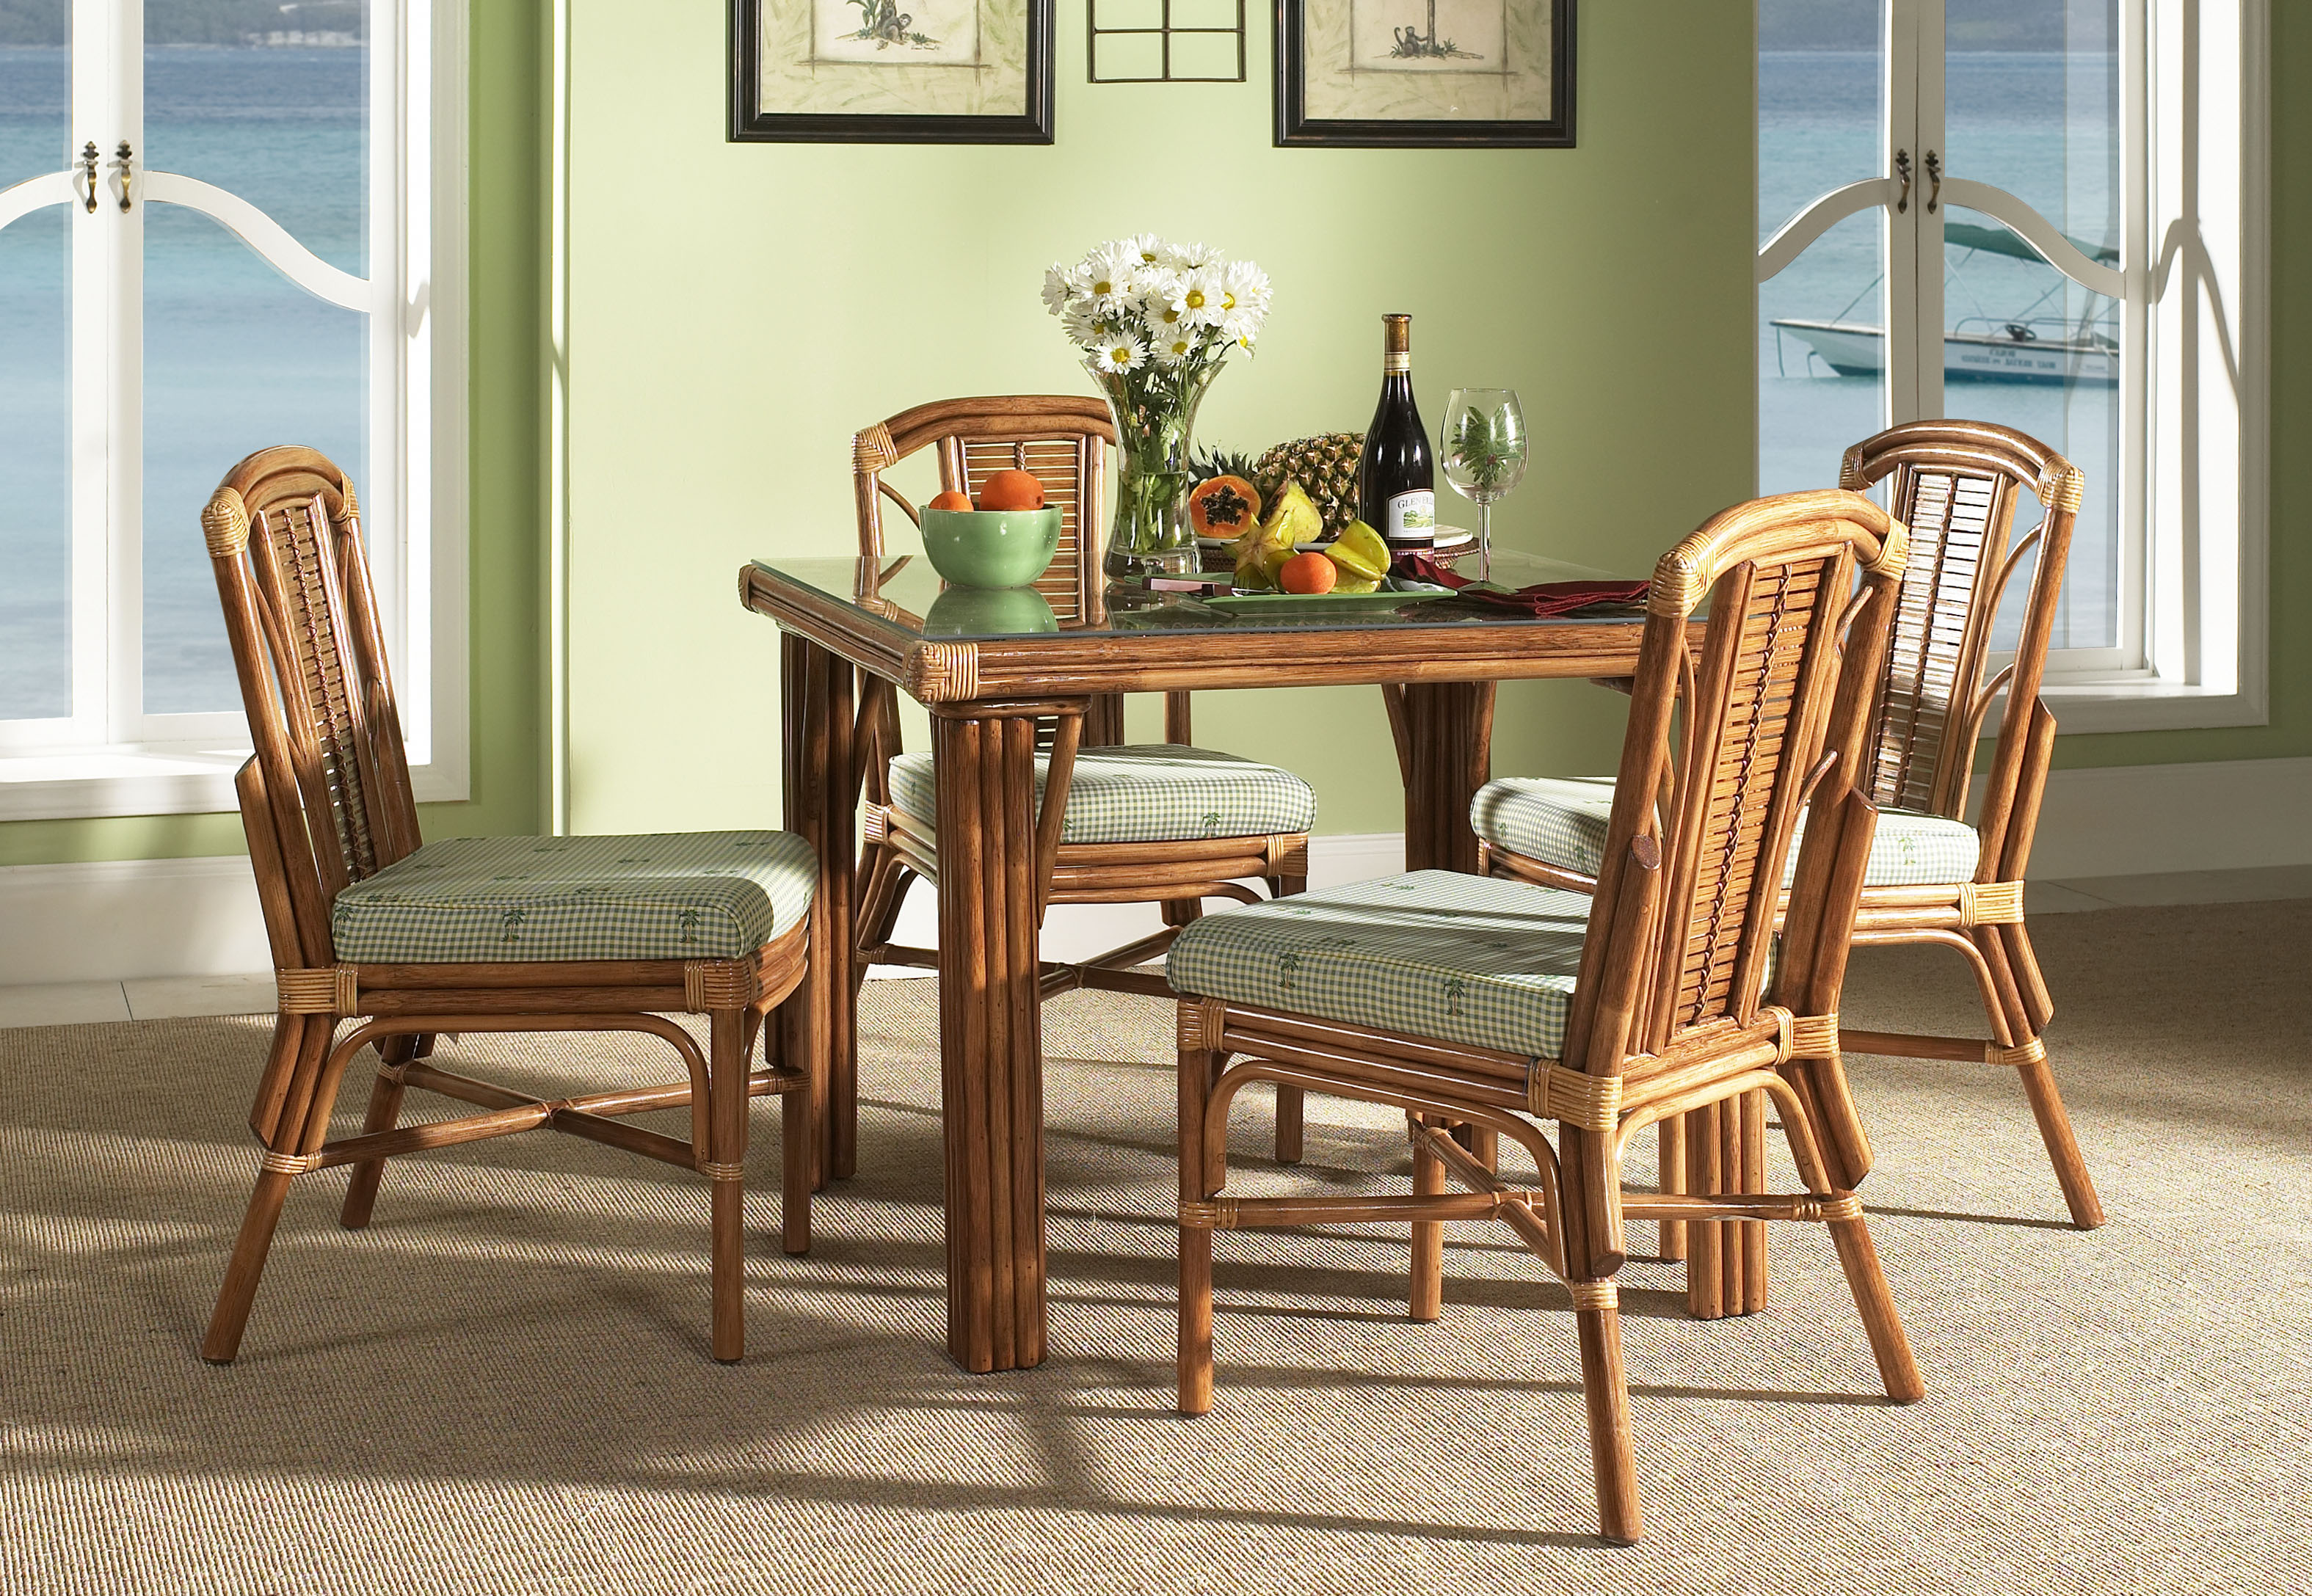 dining room wicker kitchen chairs Wicker Dining Chairs